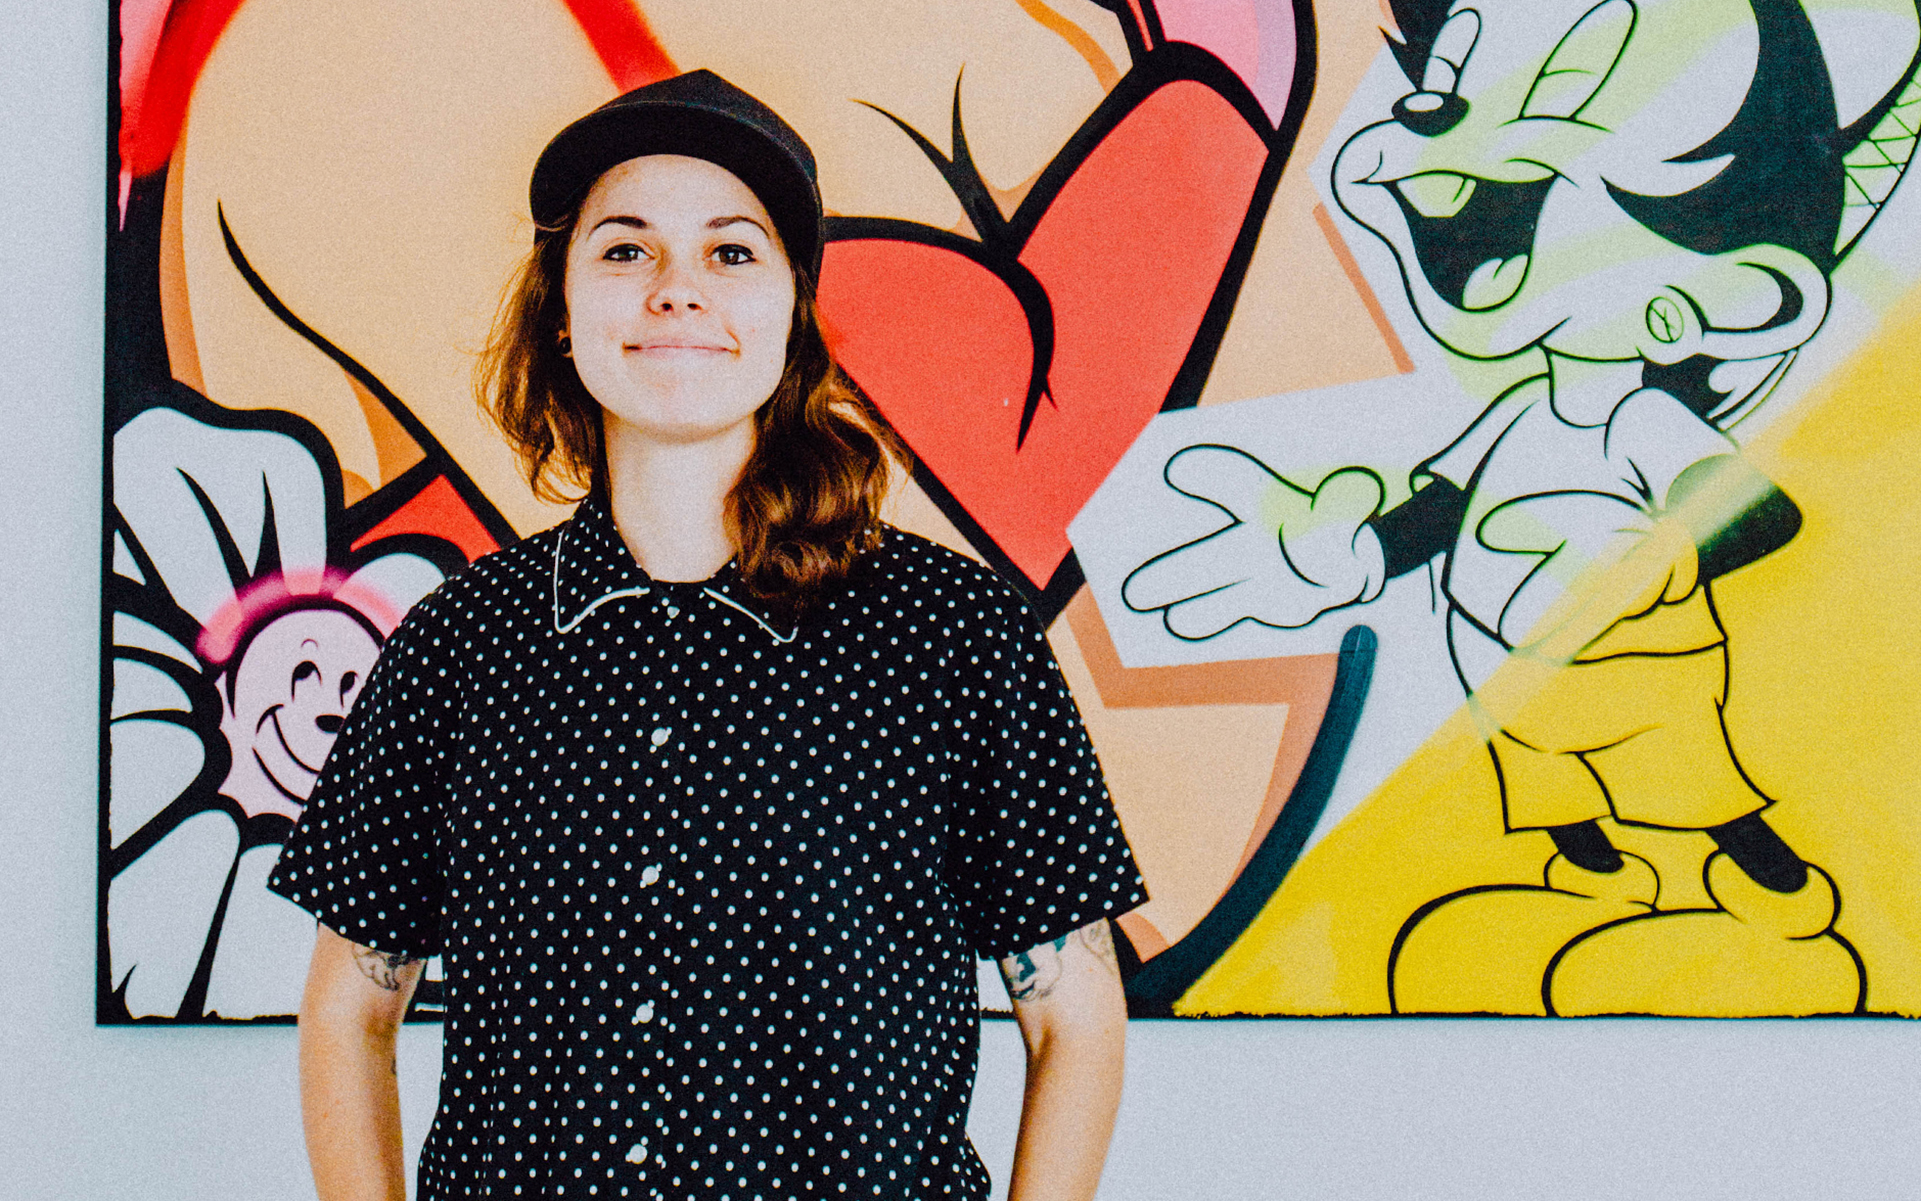 You Can Buy Cannabis and See Nina Palomba's Art Show at the Same Time